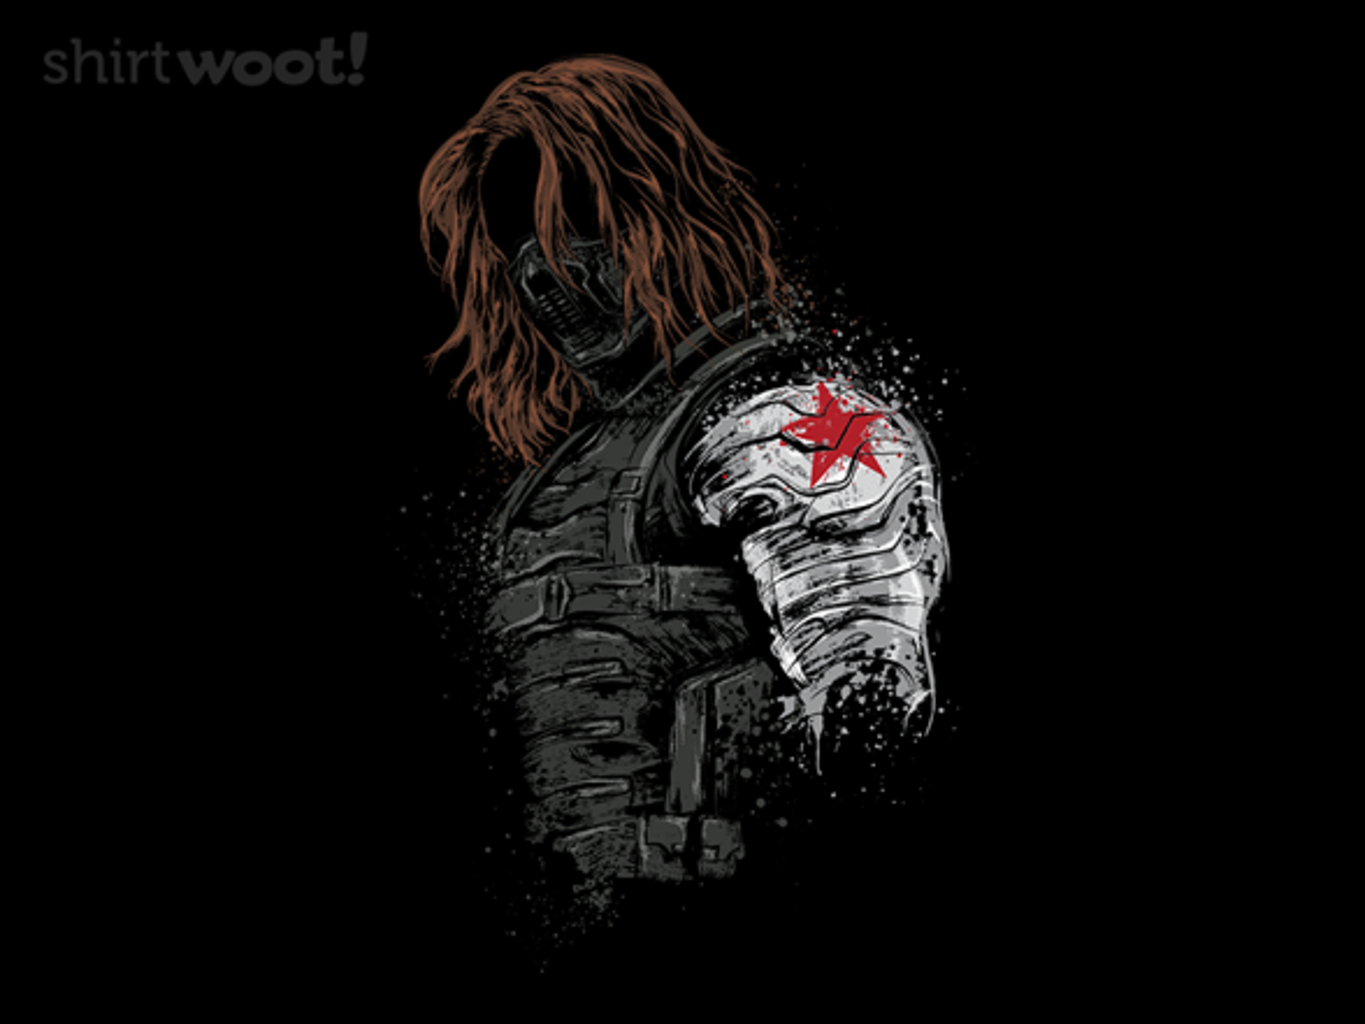 Woot!: Winter Soldier